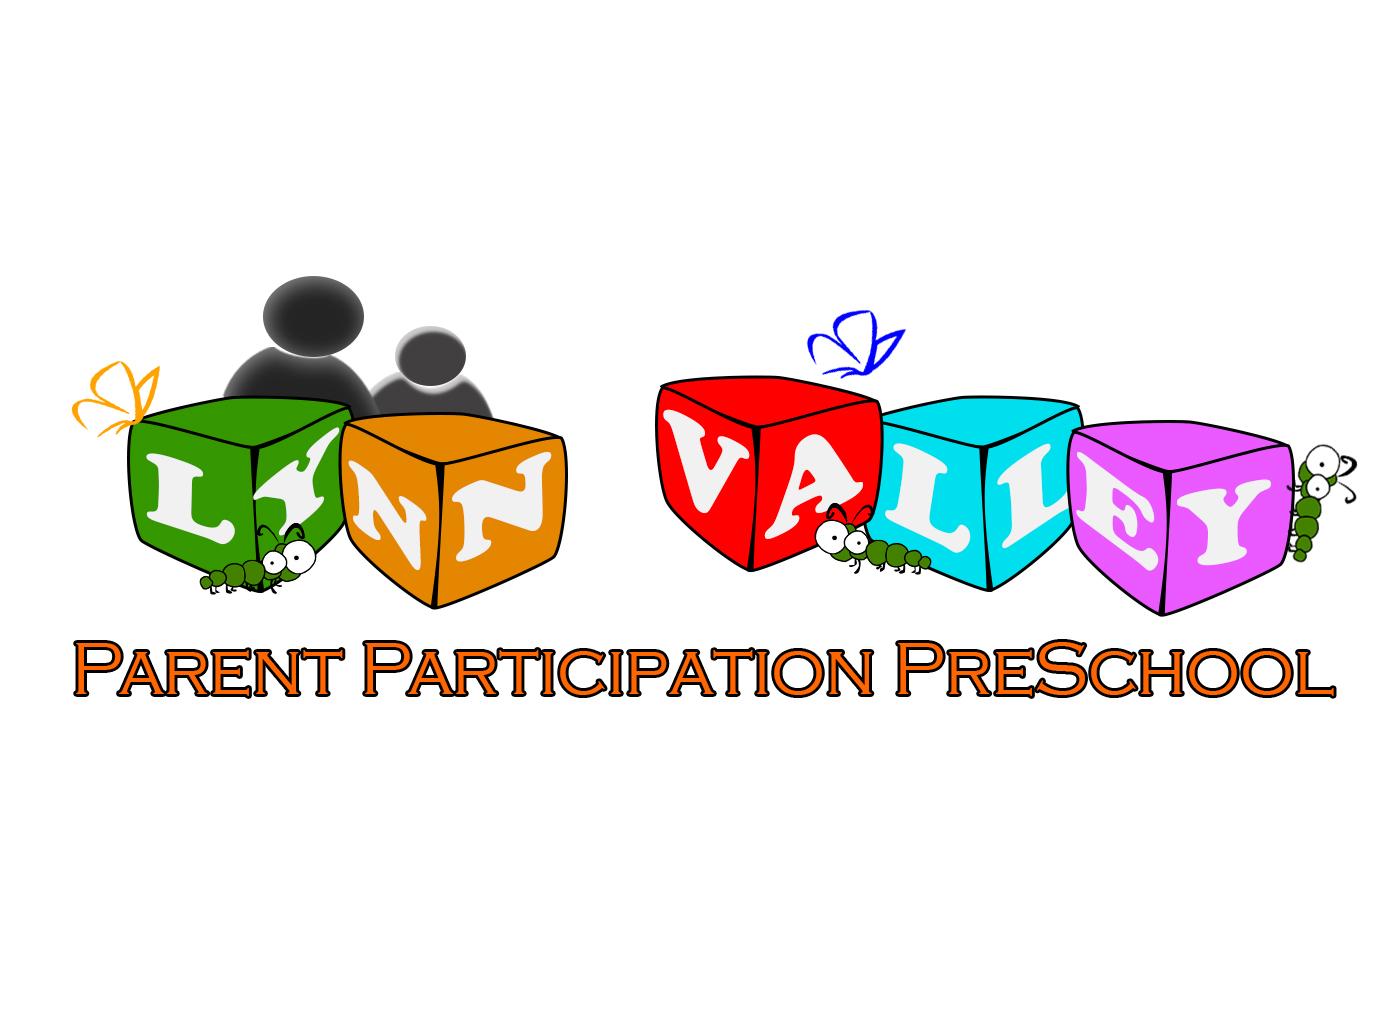 Logo Design by drunkman - Entry No. 69 in the Logo Design Contest New Logo Design for Lynn Valley Parent Participation Preschool.